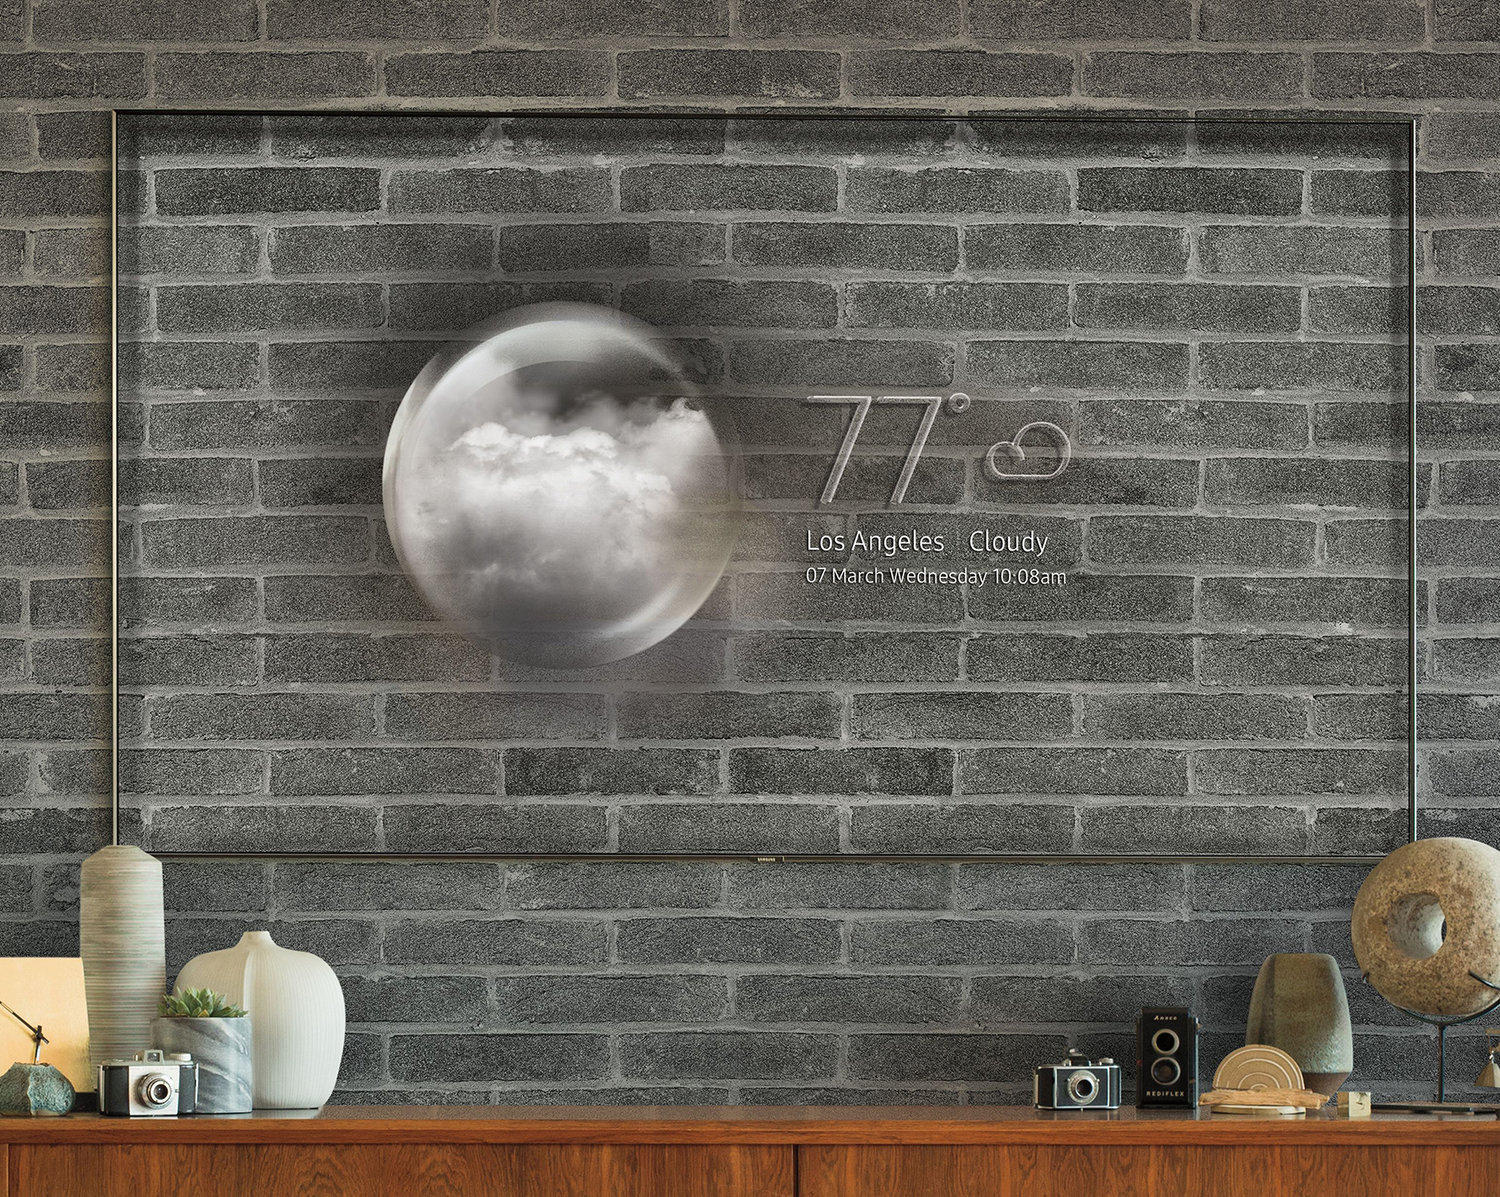 New Samsung QLED Ambient Mode — Vision and Sound